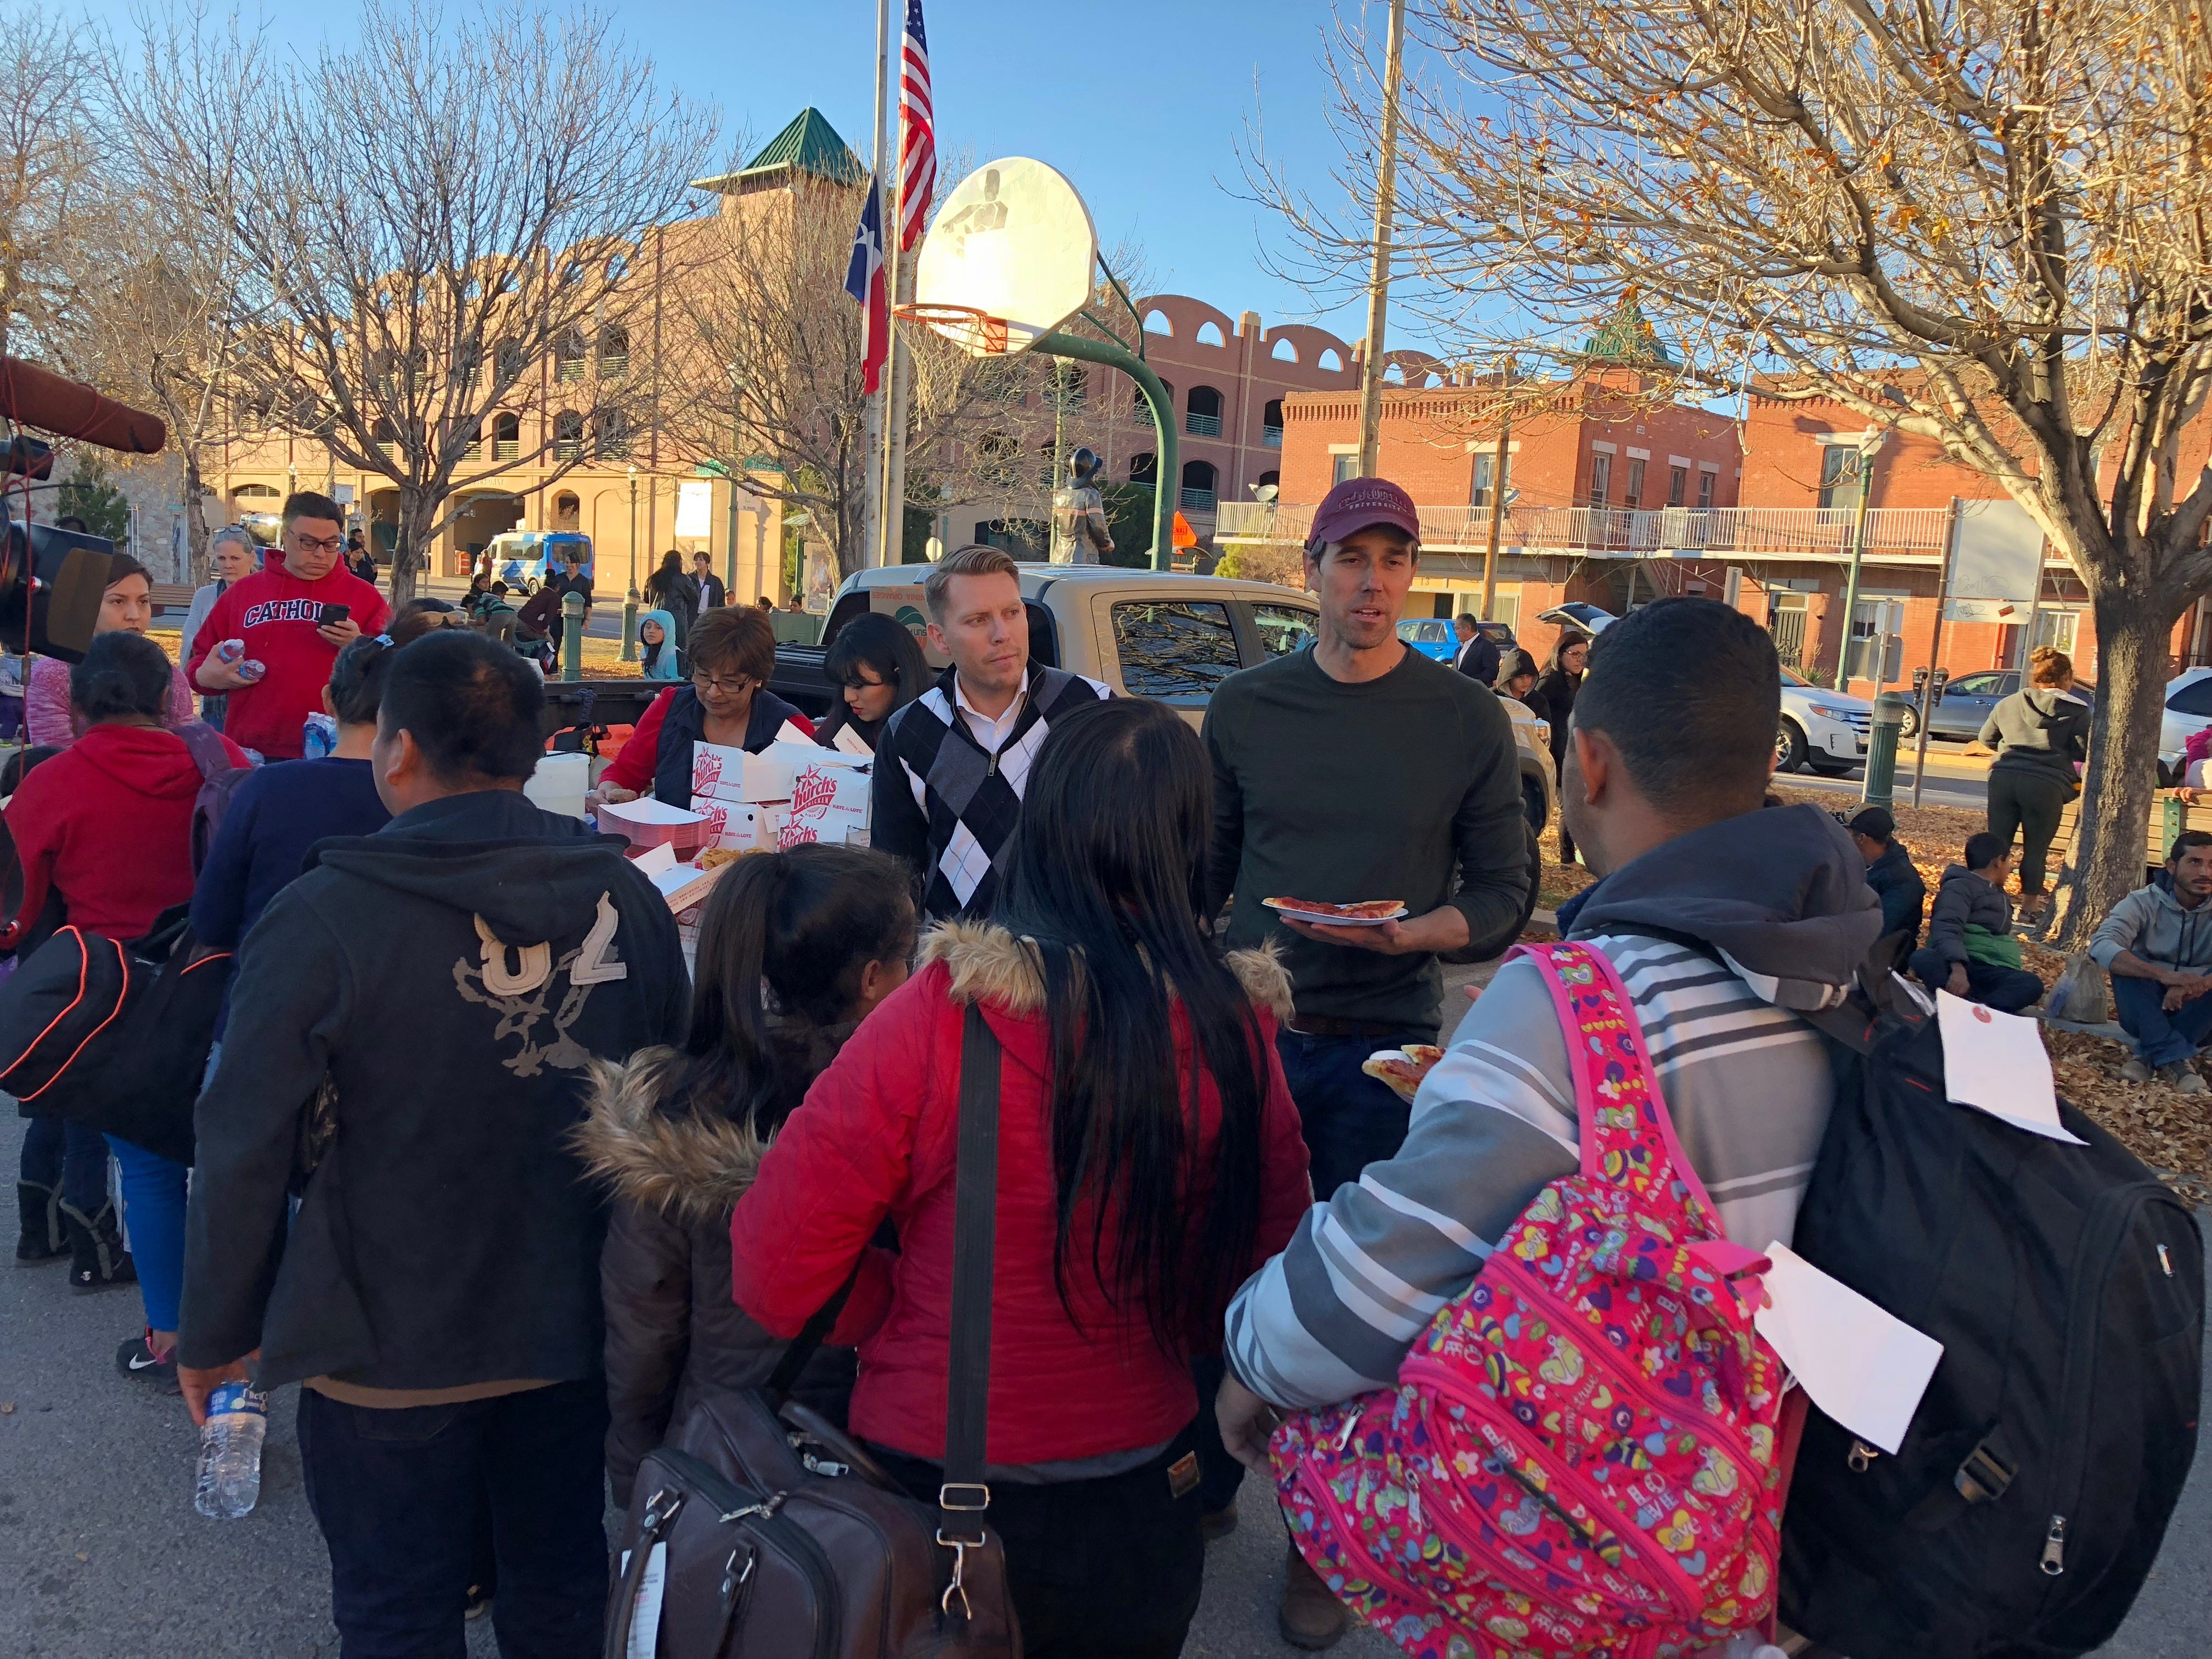 U.S. Rep. Beto O'Rourke, right, and El Paso County Judge Ruben Vogt passed out supplies to migrants who were dropped off in Downtown El Paso.